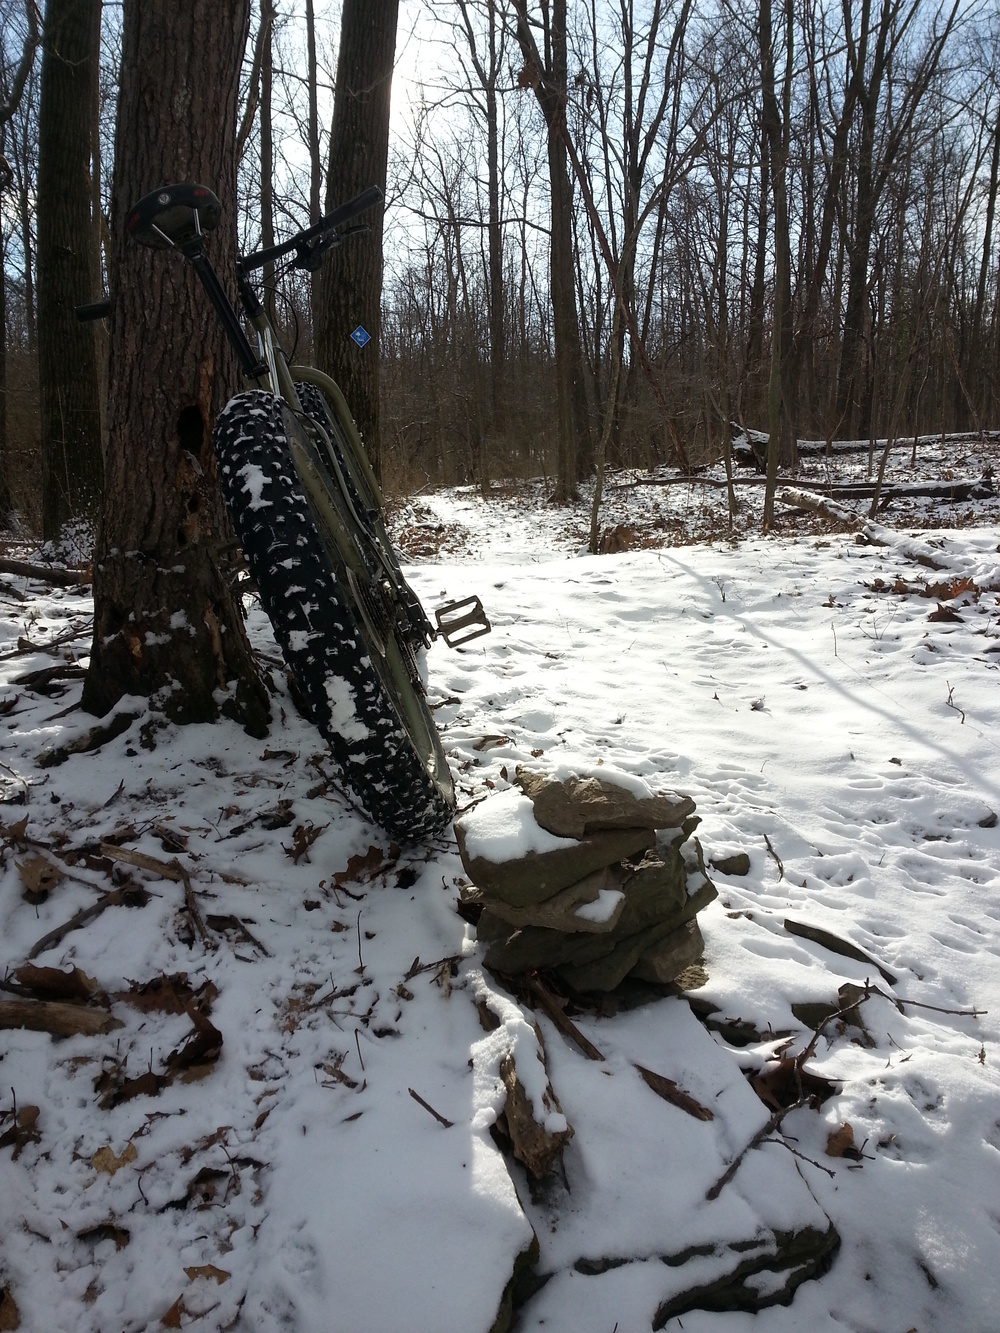 East_Trail_Snow_Fatbike.jpg